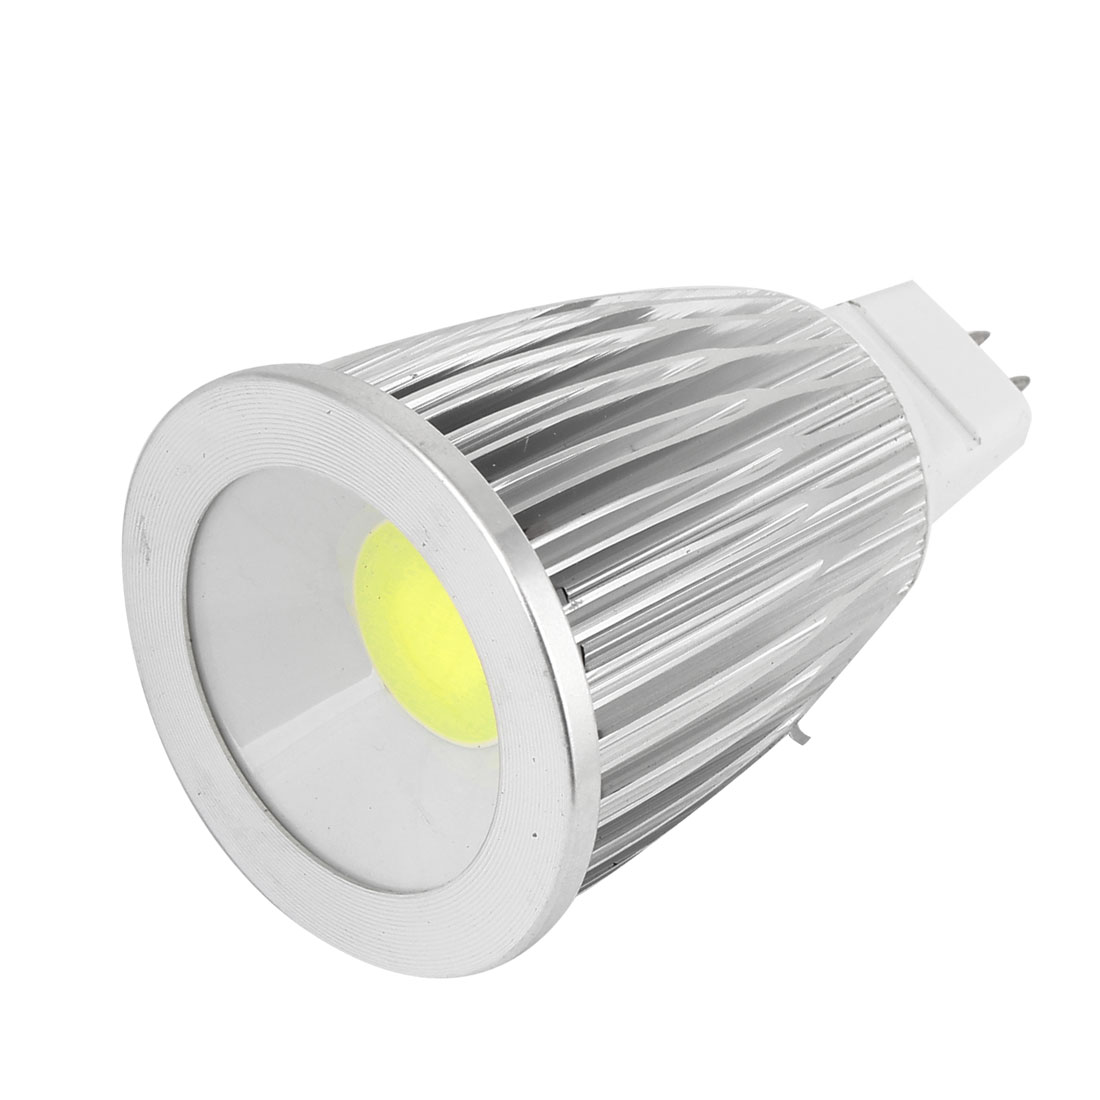 AC 12V 12W MR16 840-910LM Cool White Light COB LED Downlight Spotlight Lamp